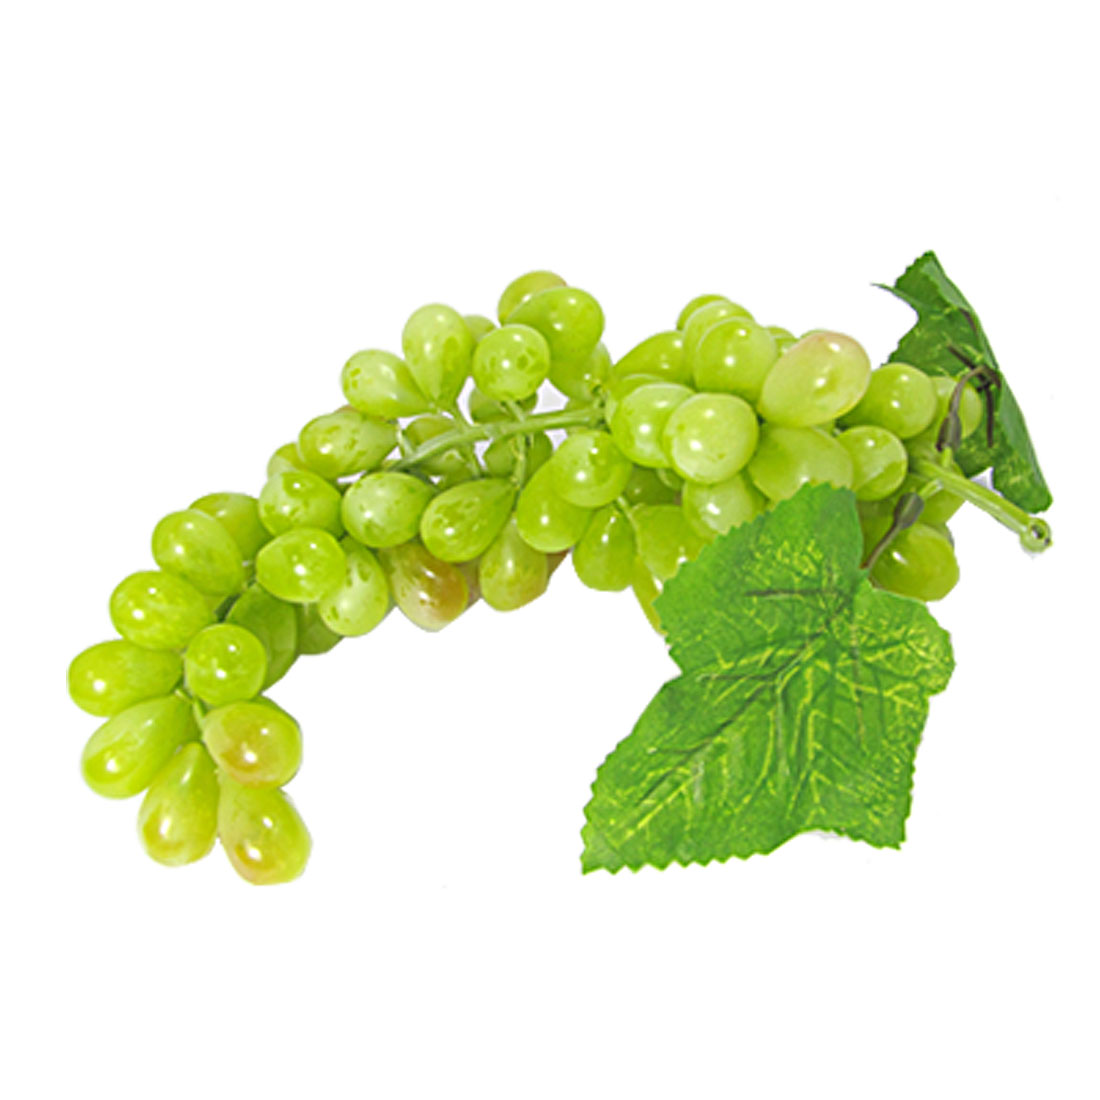 Green Plastic Bunch Grapes Desk Table Fruit Decor